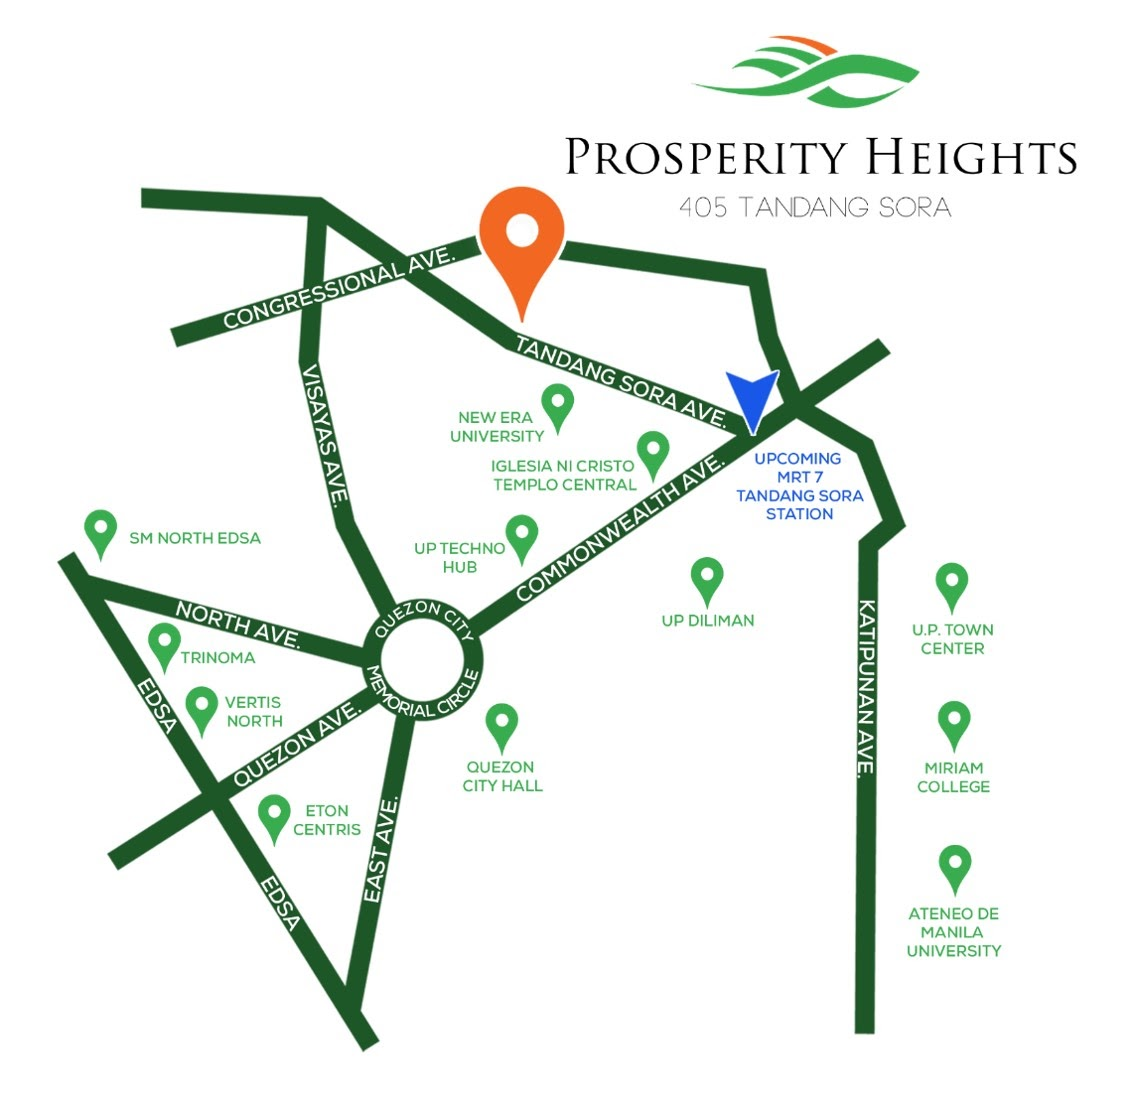 Prosperity Heights location map